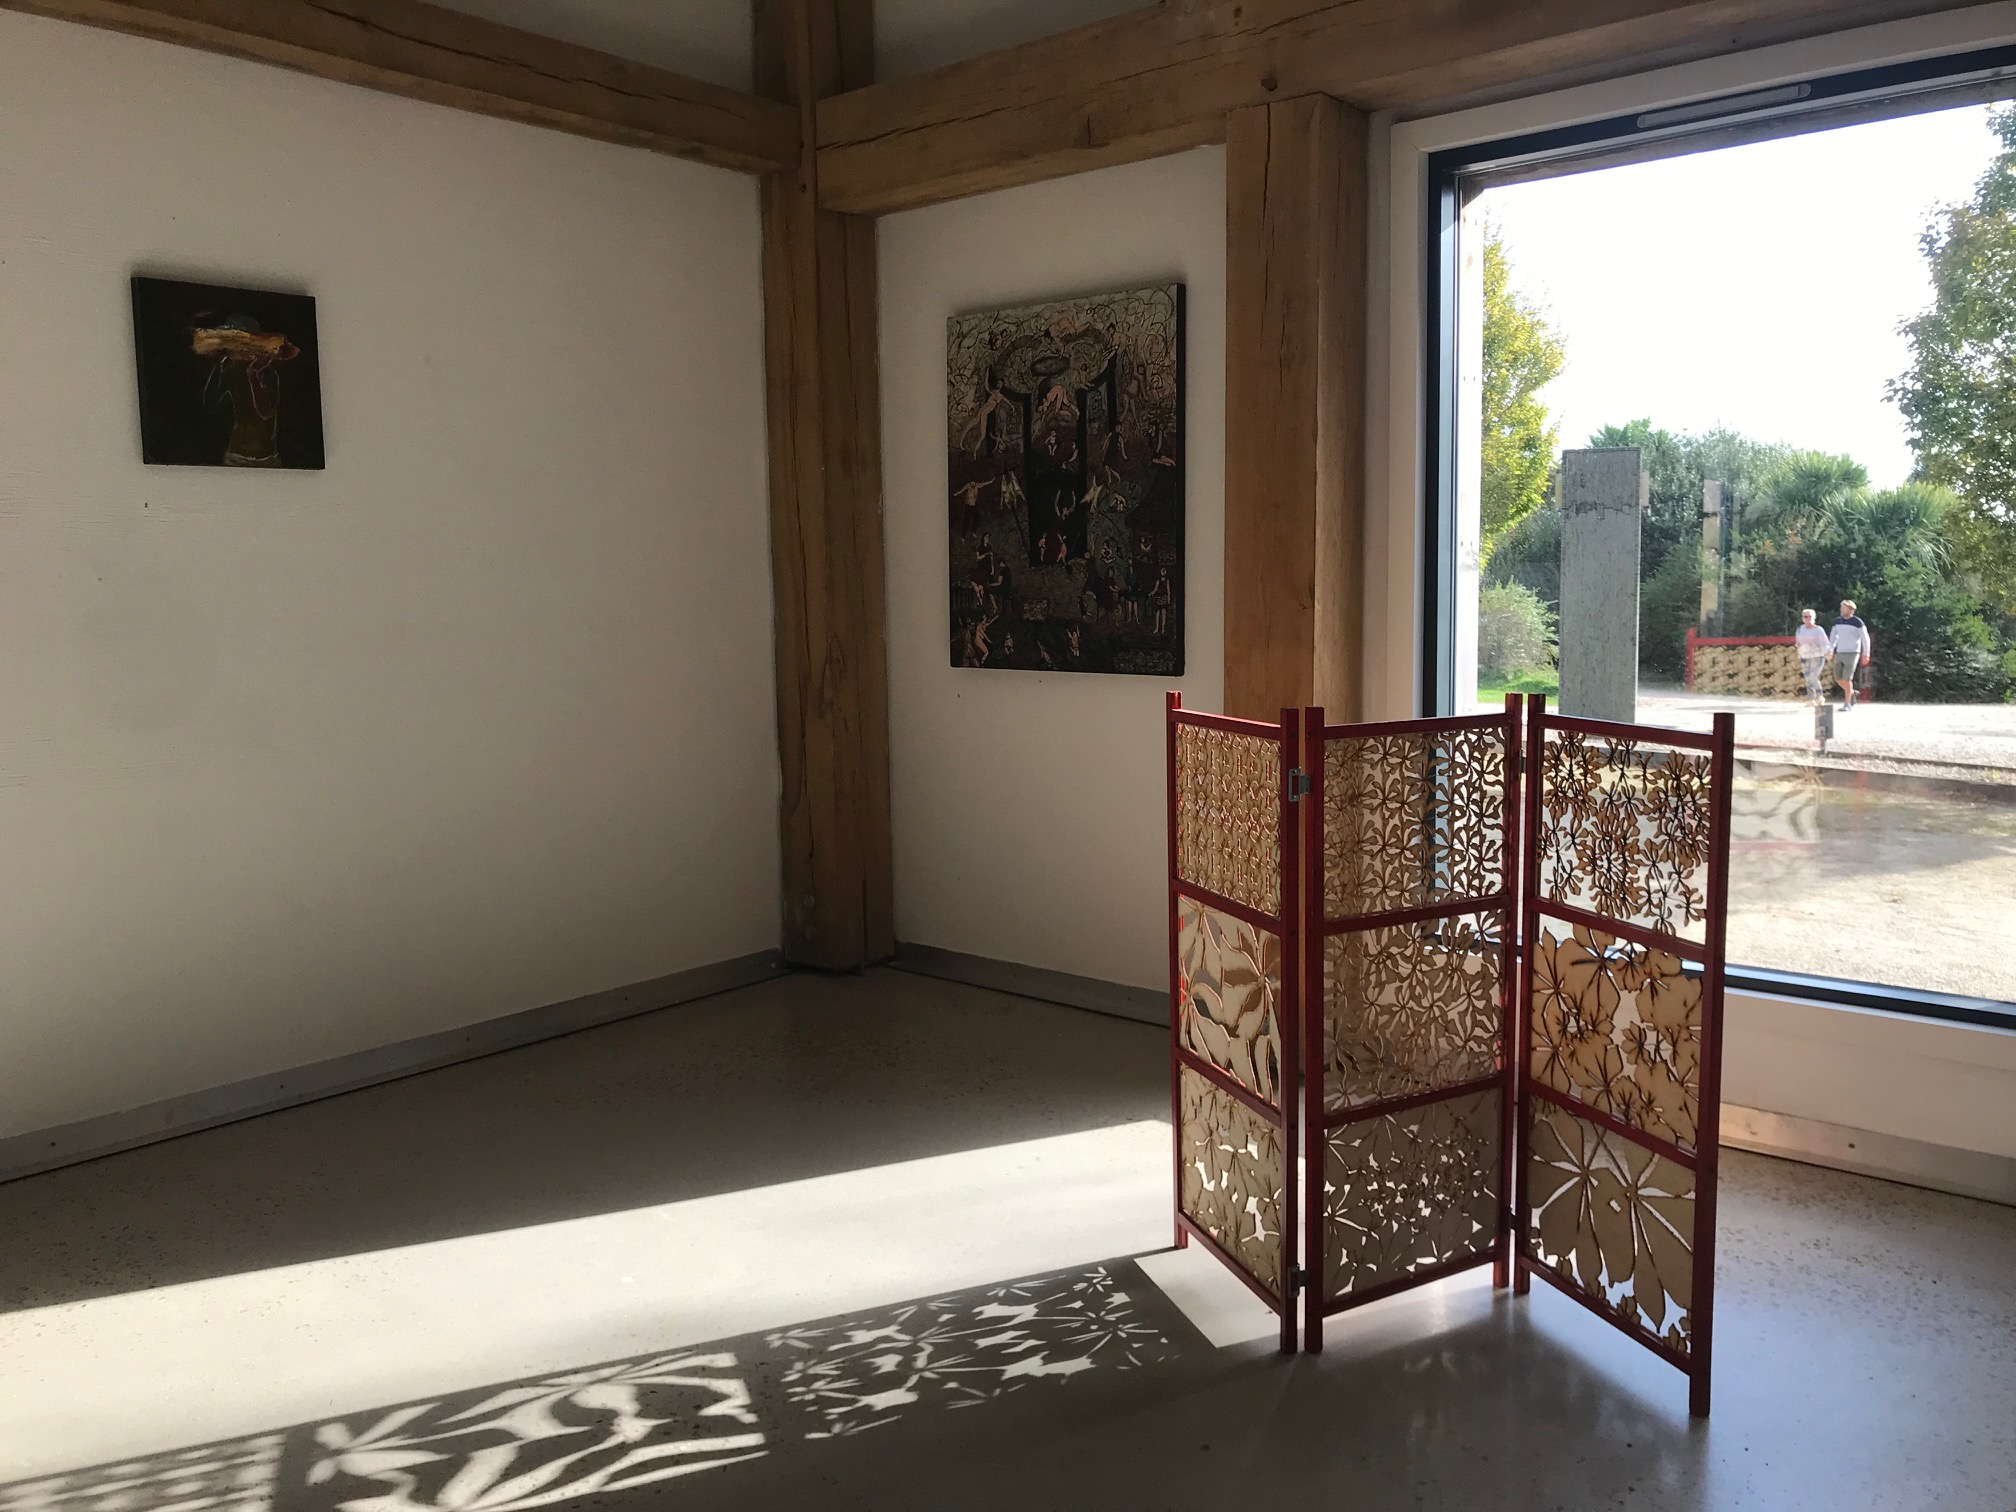 Paintings on show at Tremenheere Gallery